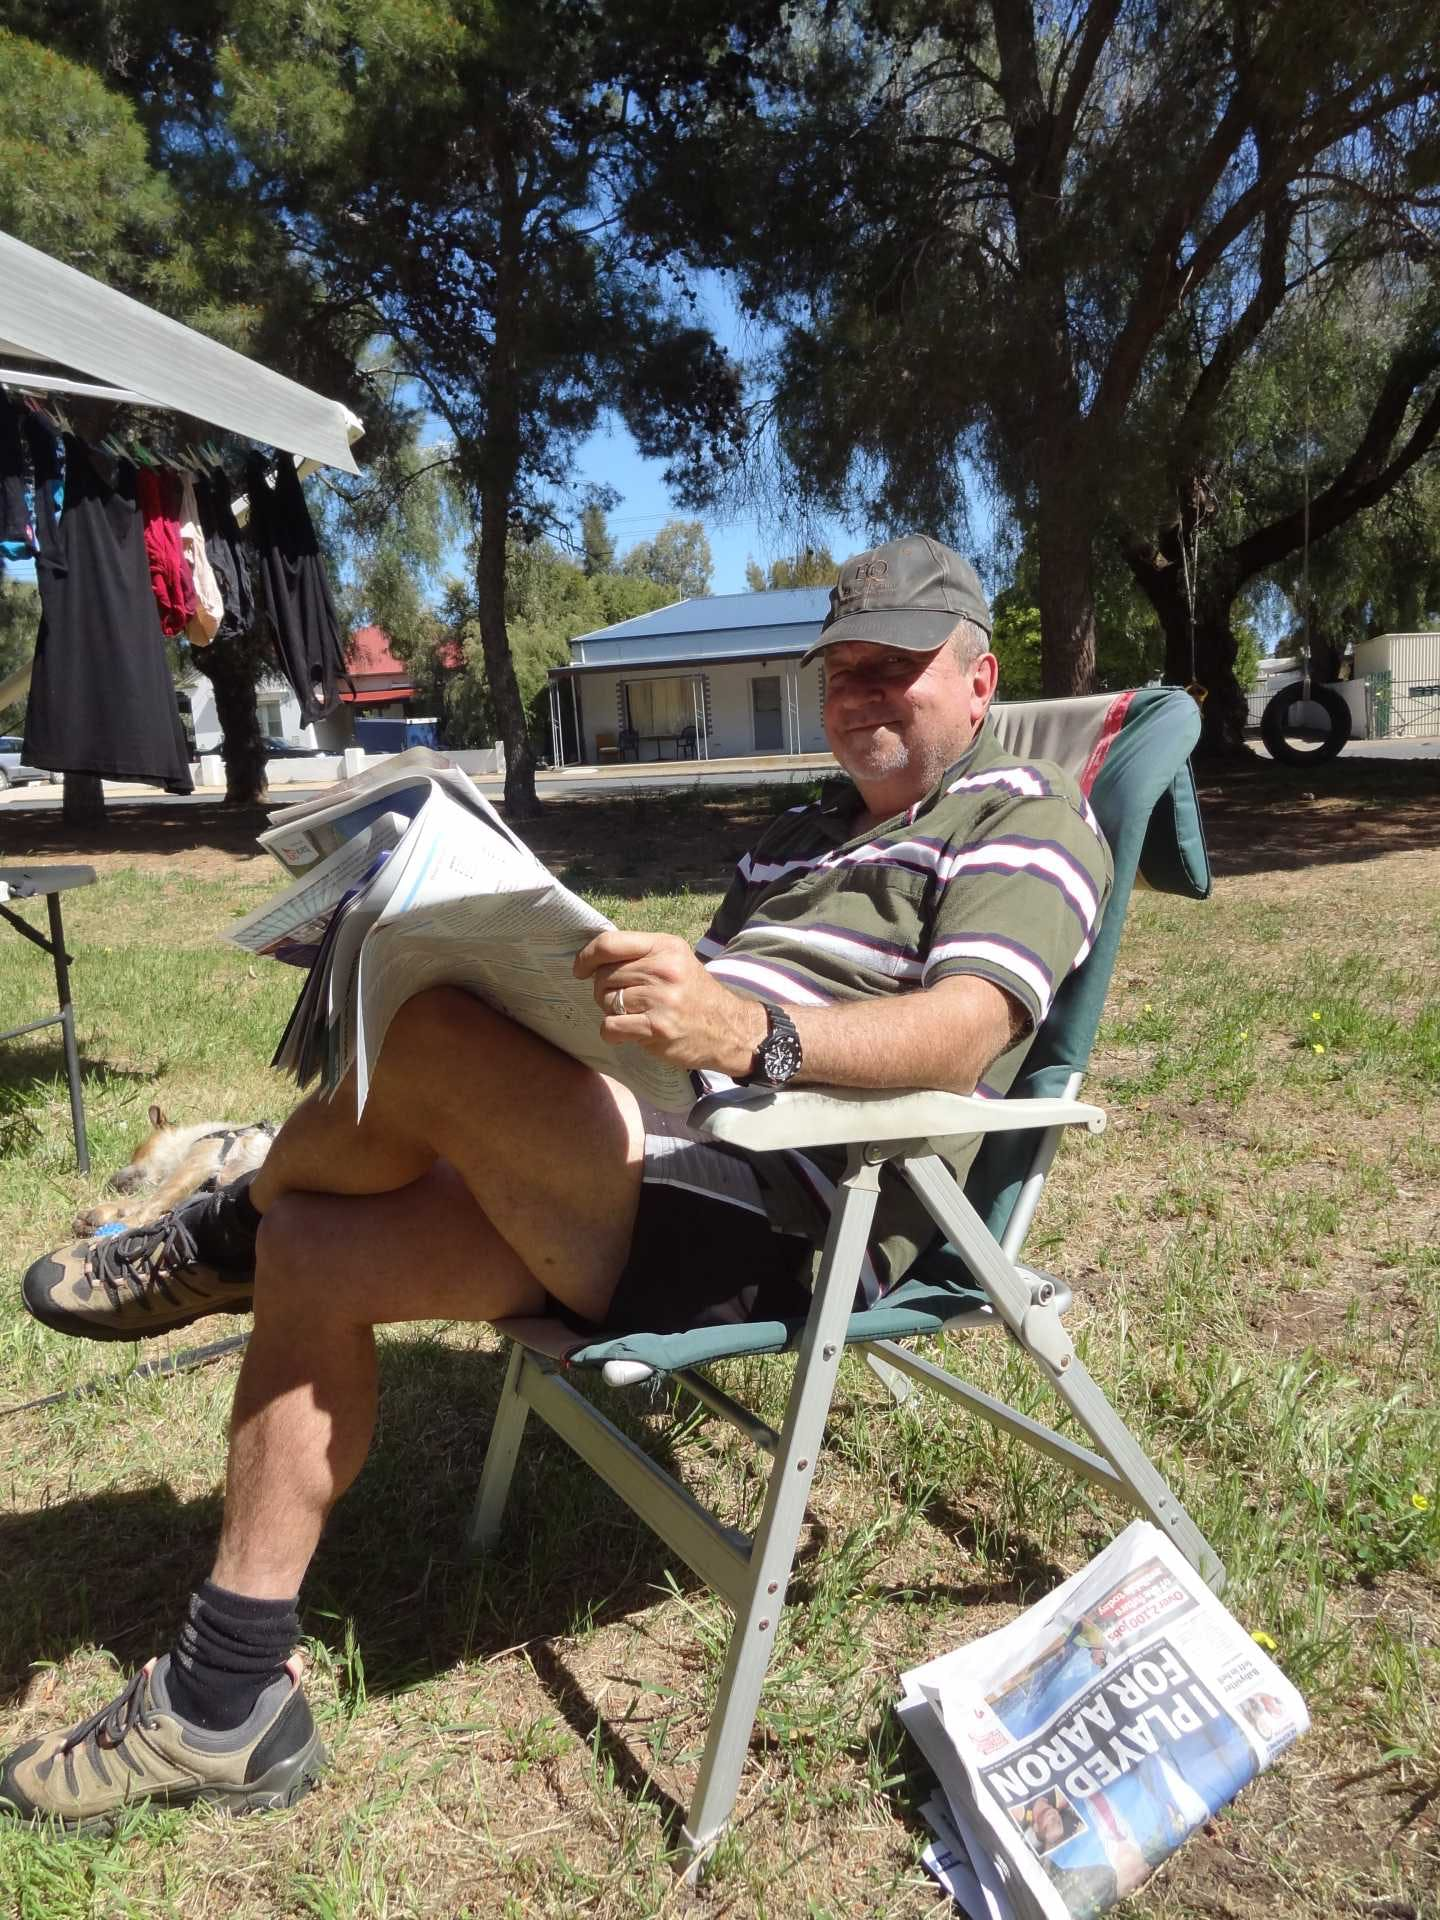 Graham relaxing with the washing reading the paper in Kittto Park - image G&J Gardiner